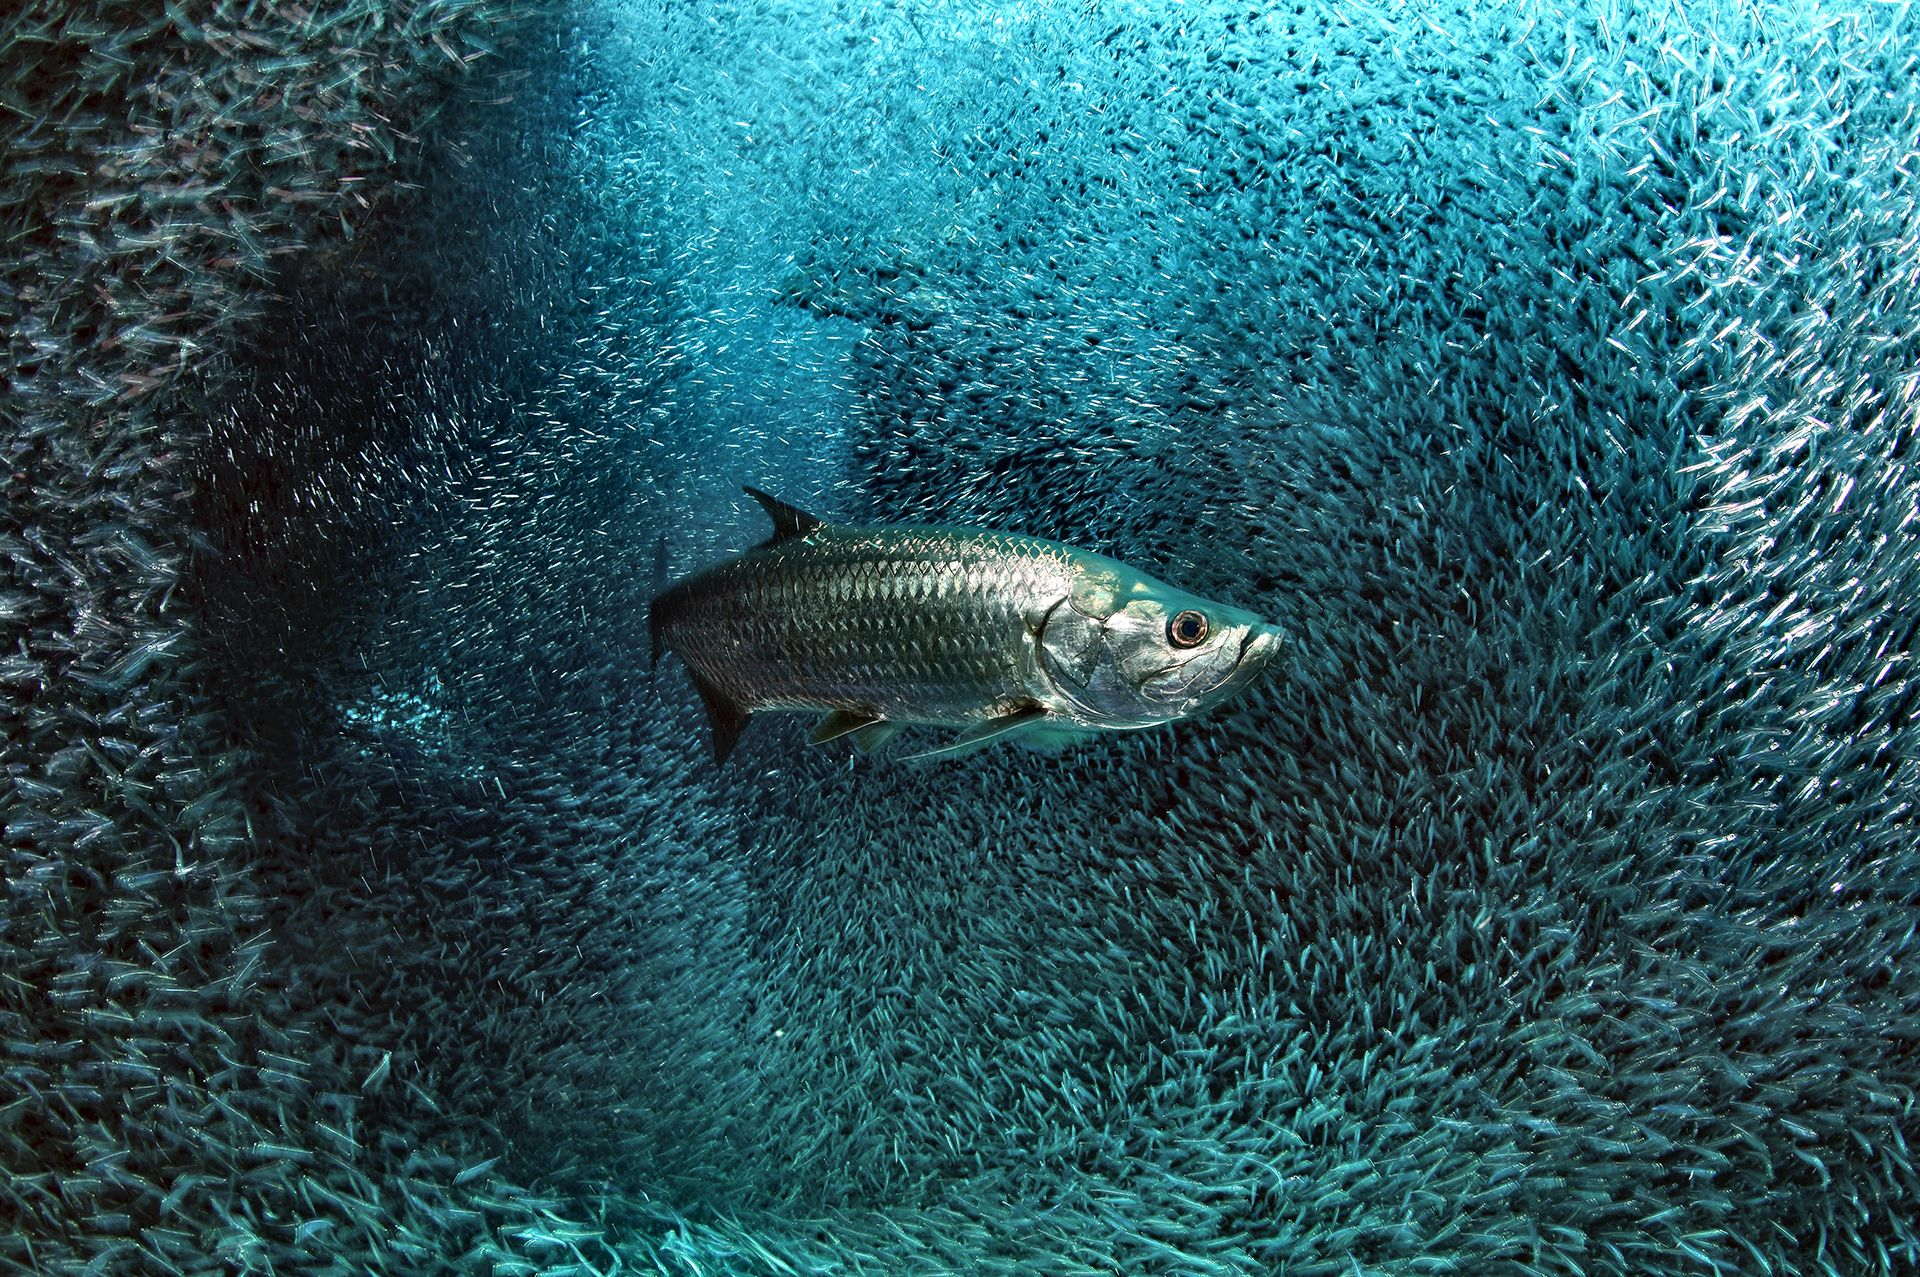 Tarpon in a cloud of glass fishes